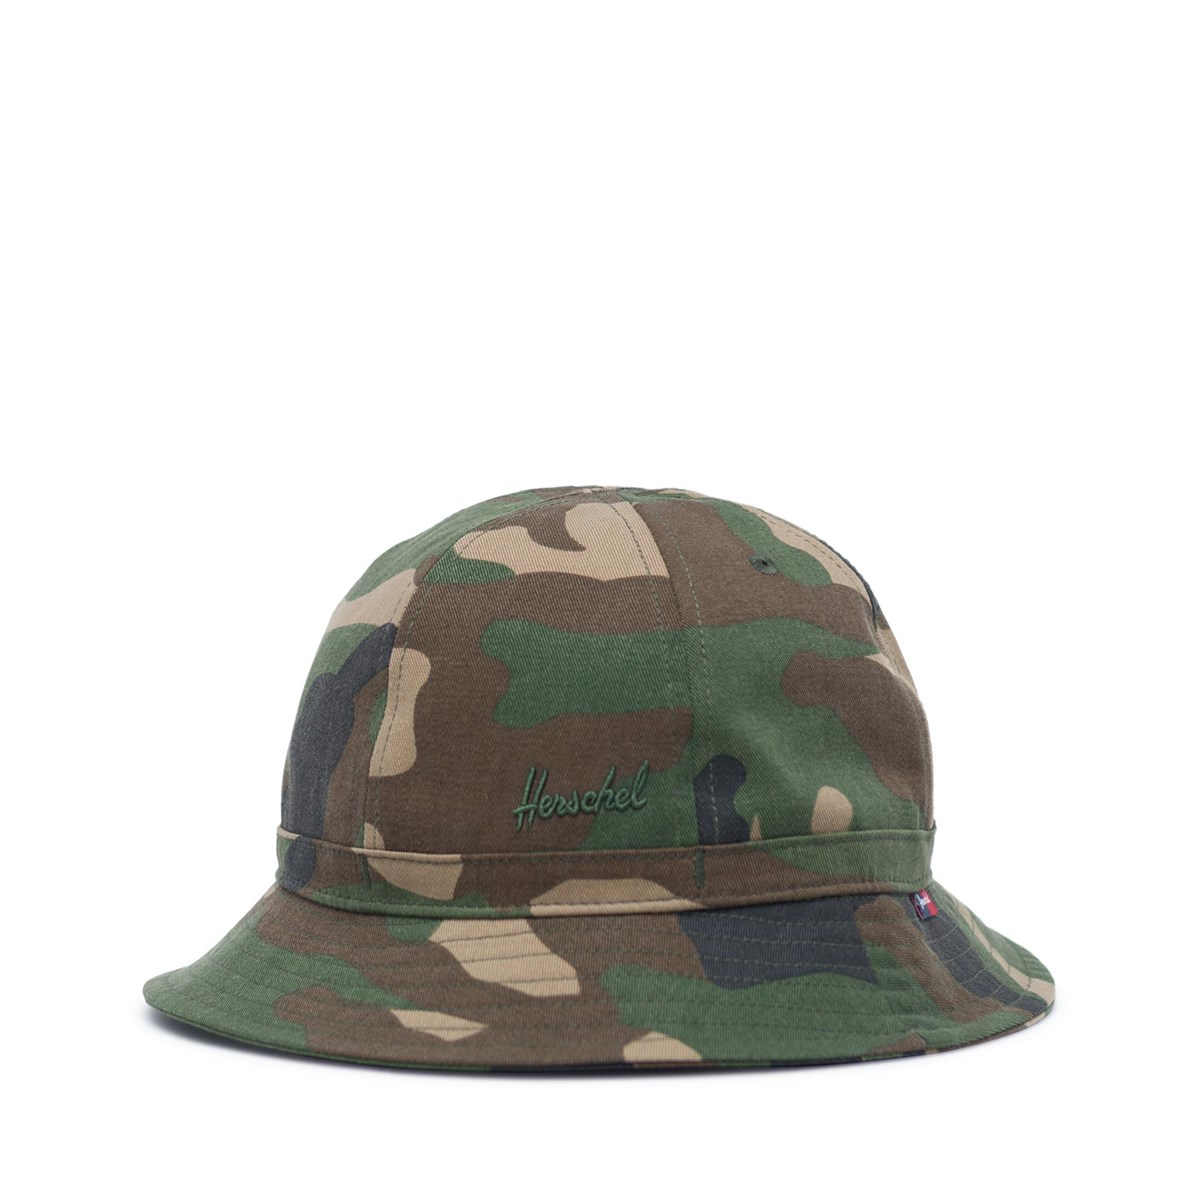 be4bf9f0 Cooperman Bucket Hat in Camo. Previous. default view